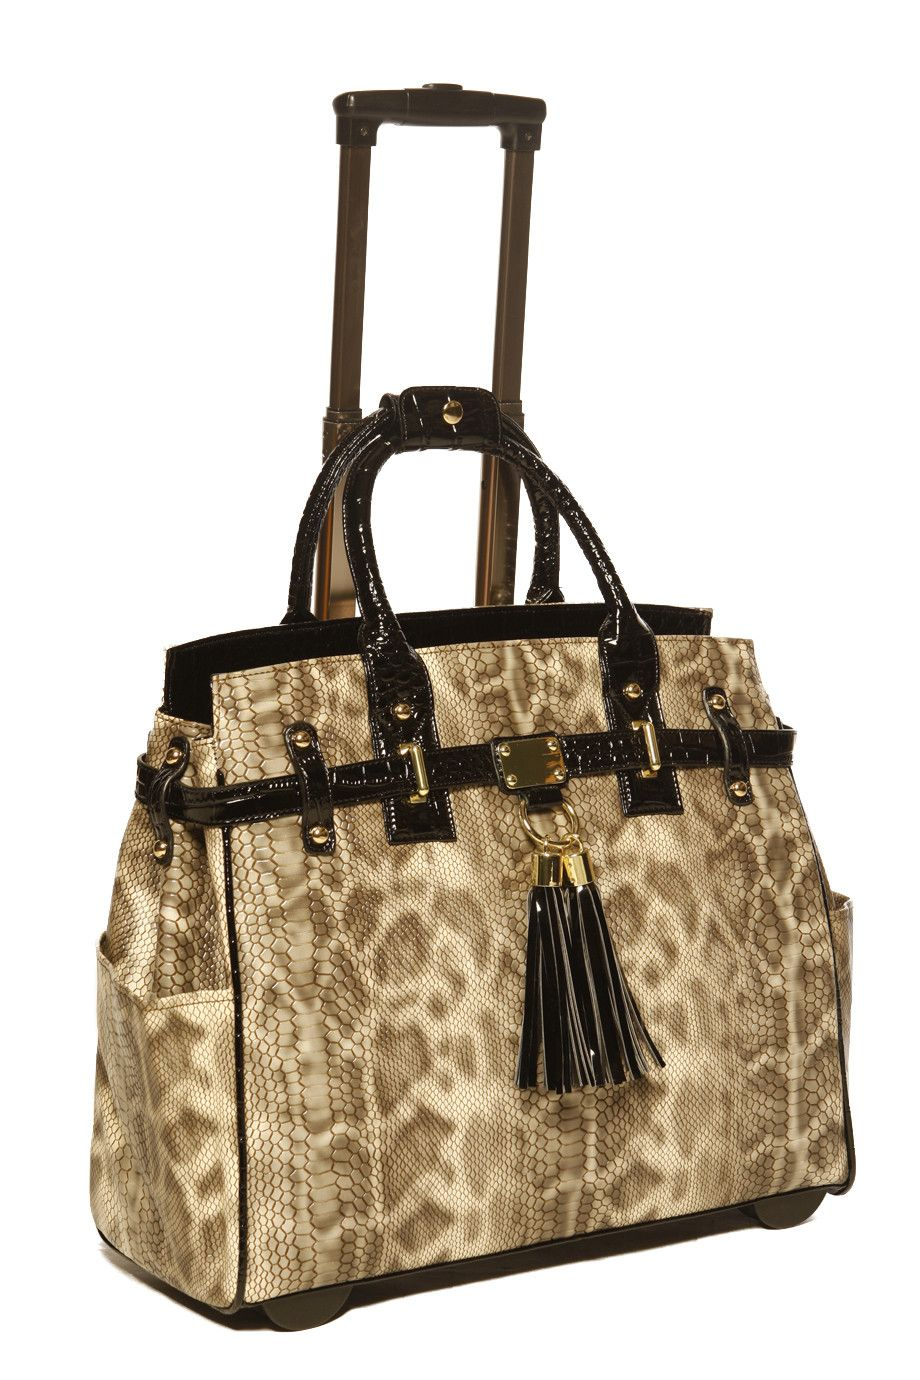 The Python Rolling Laptop Carryall Or Weekender Bag By Jkm Company And